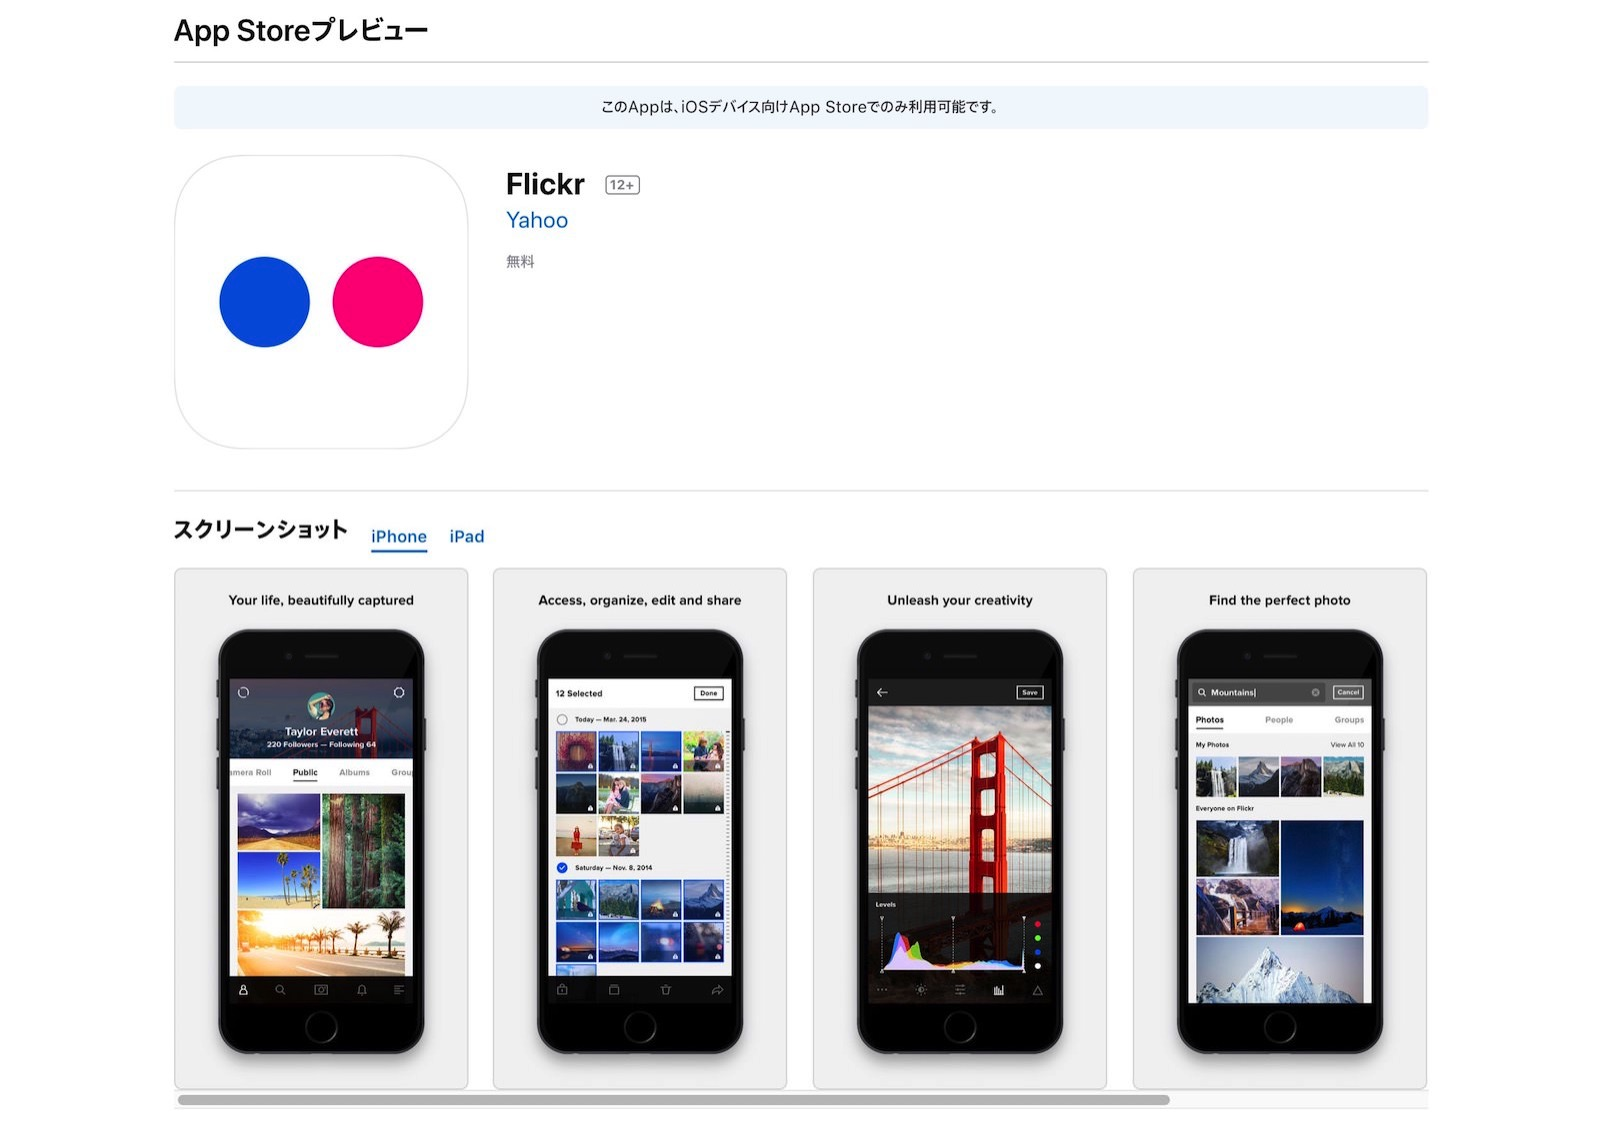 Flickr app comes back to japan